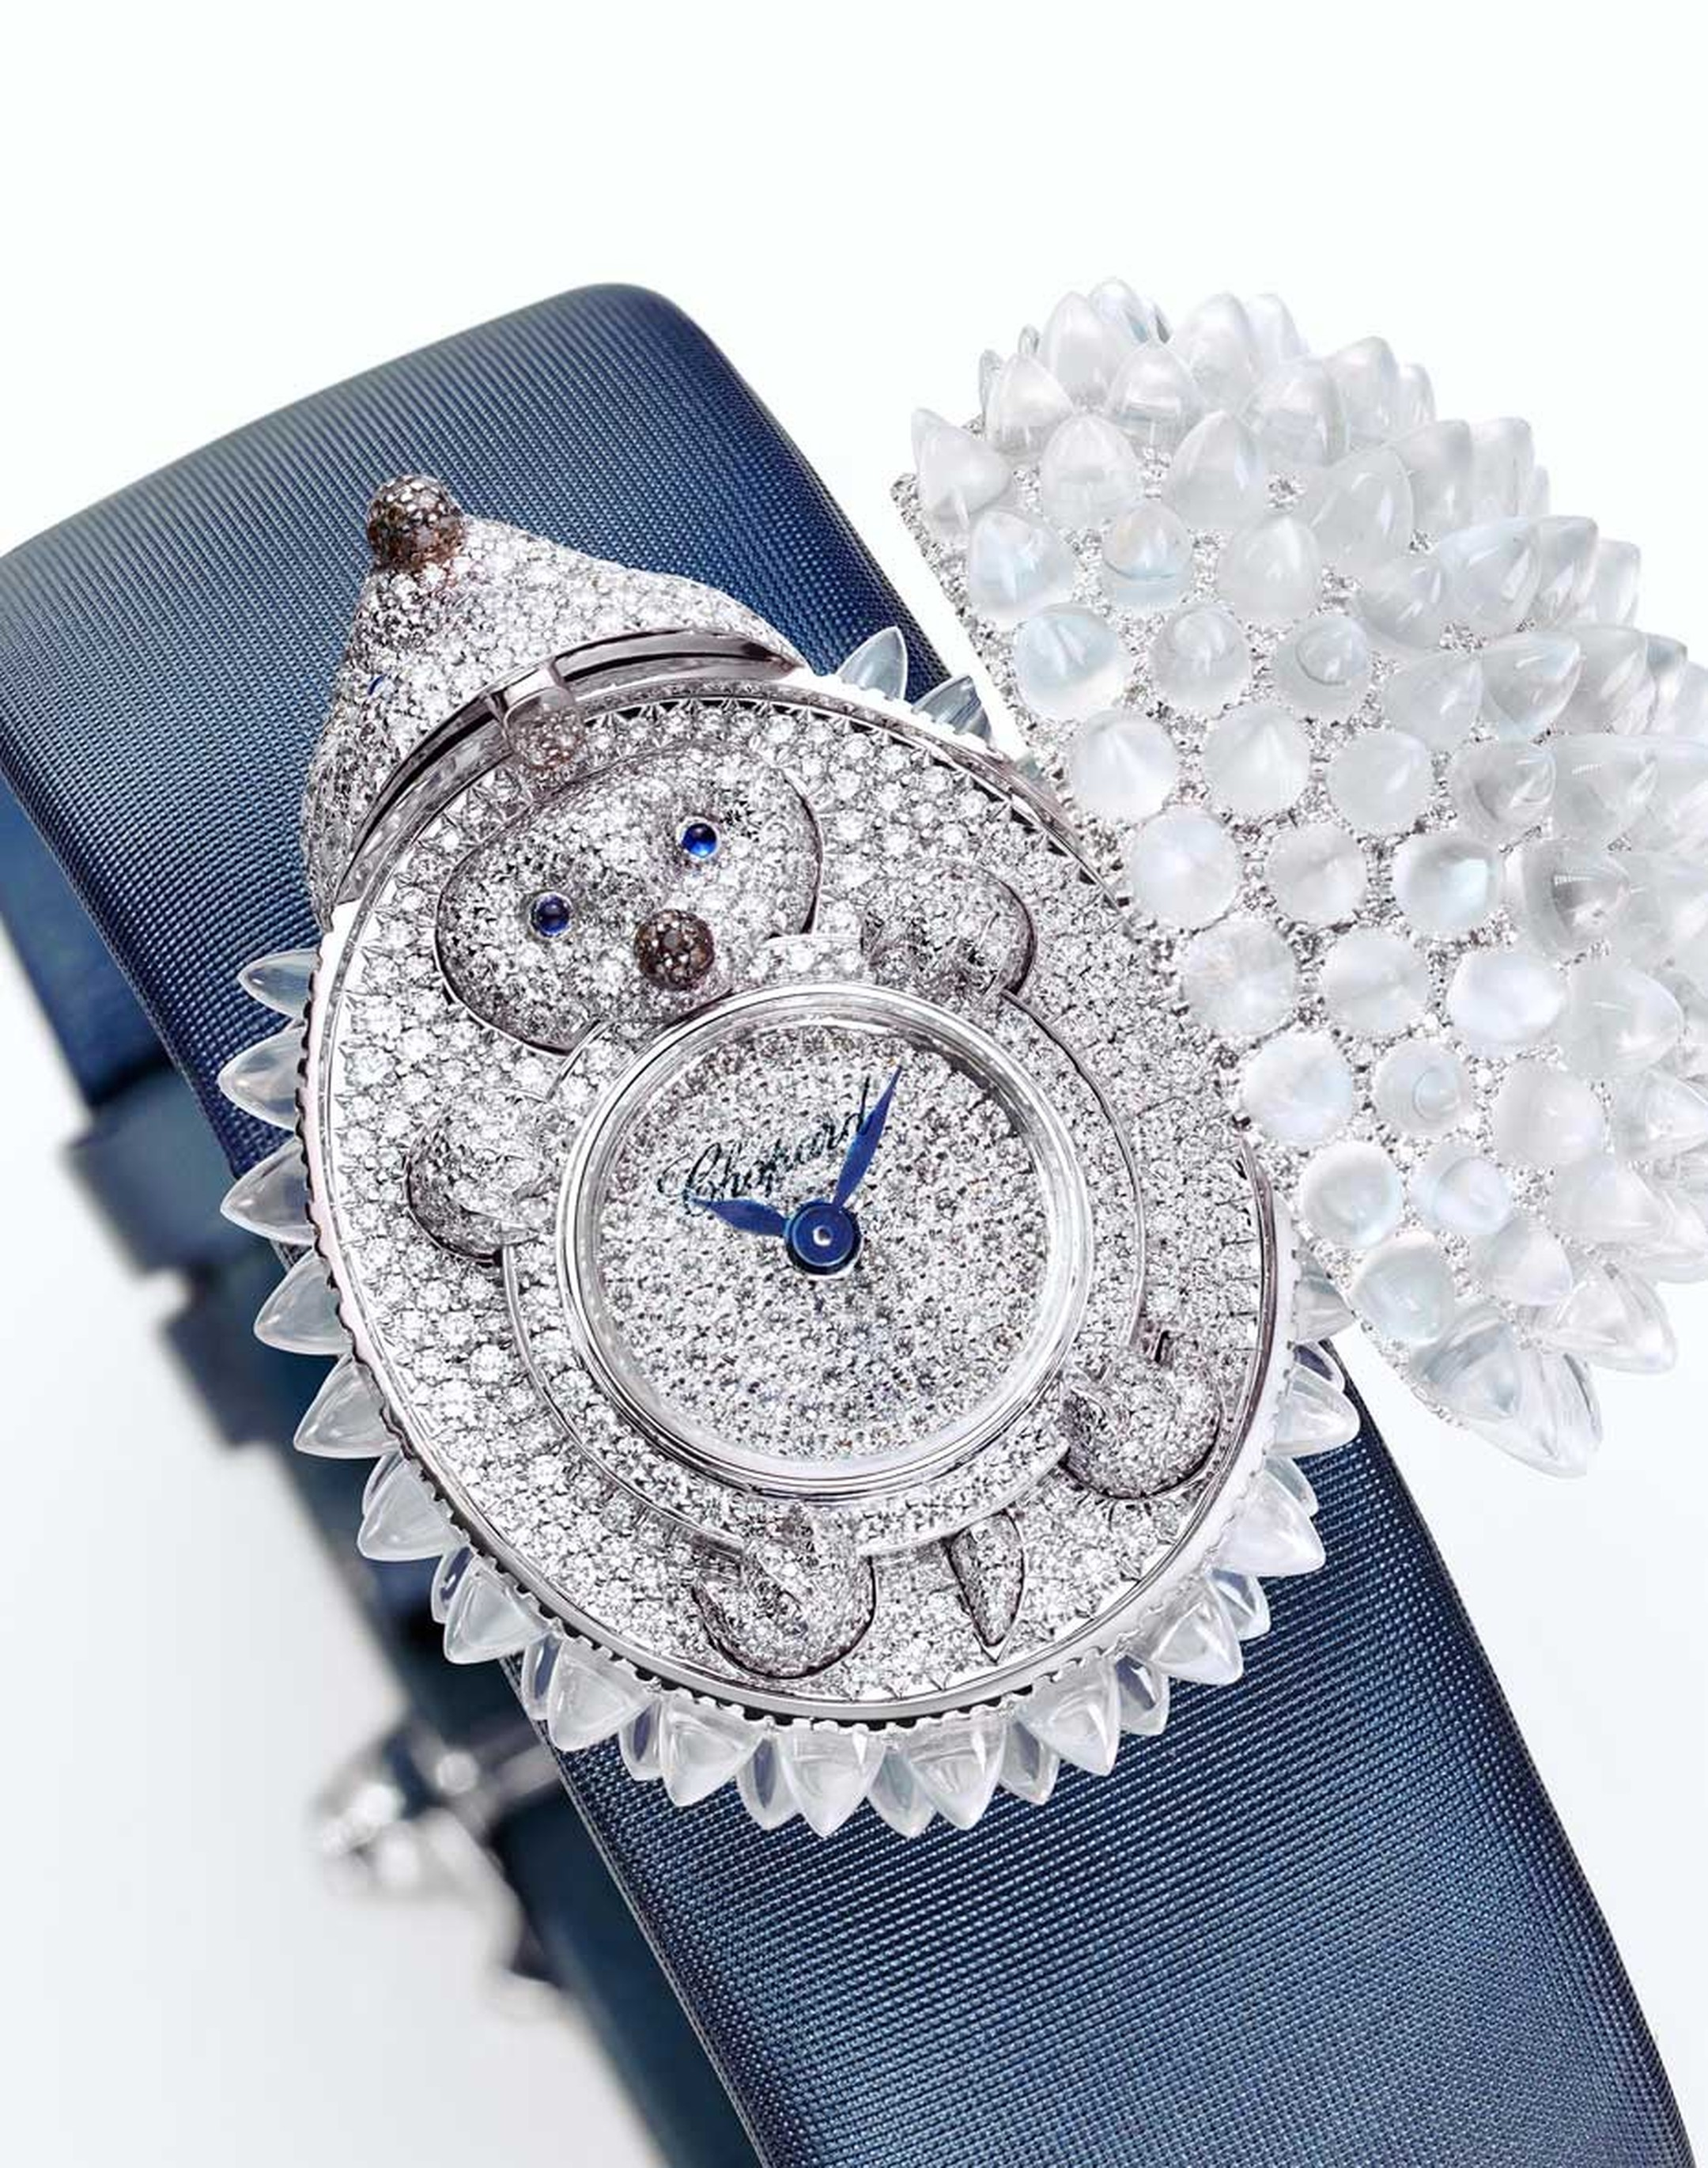 Chopard Hedgehog high jewellery watch